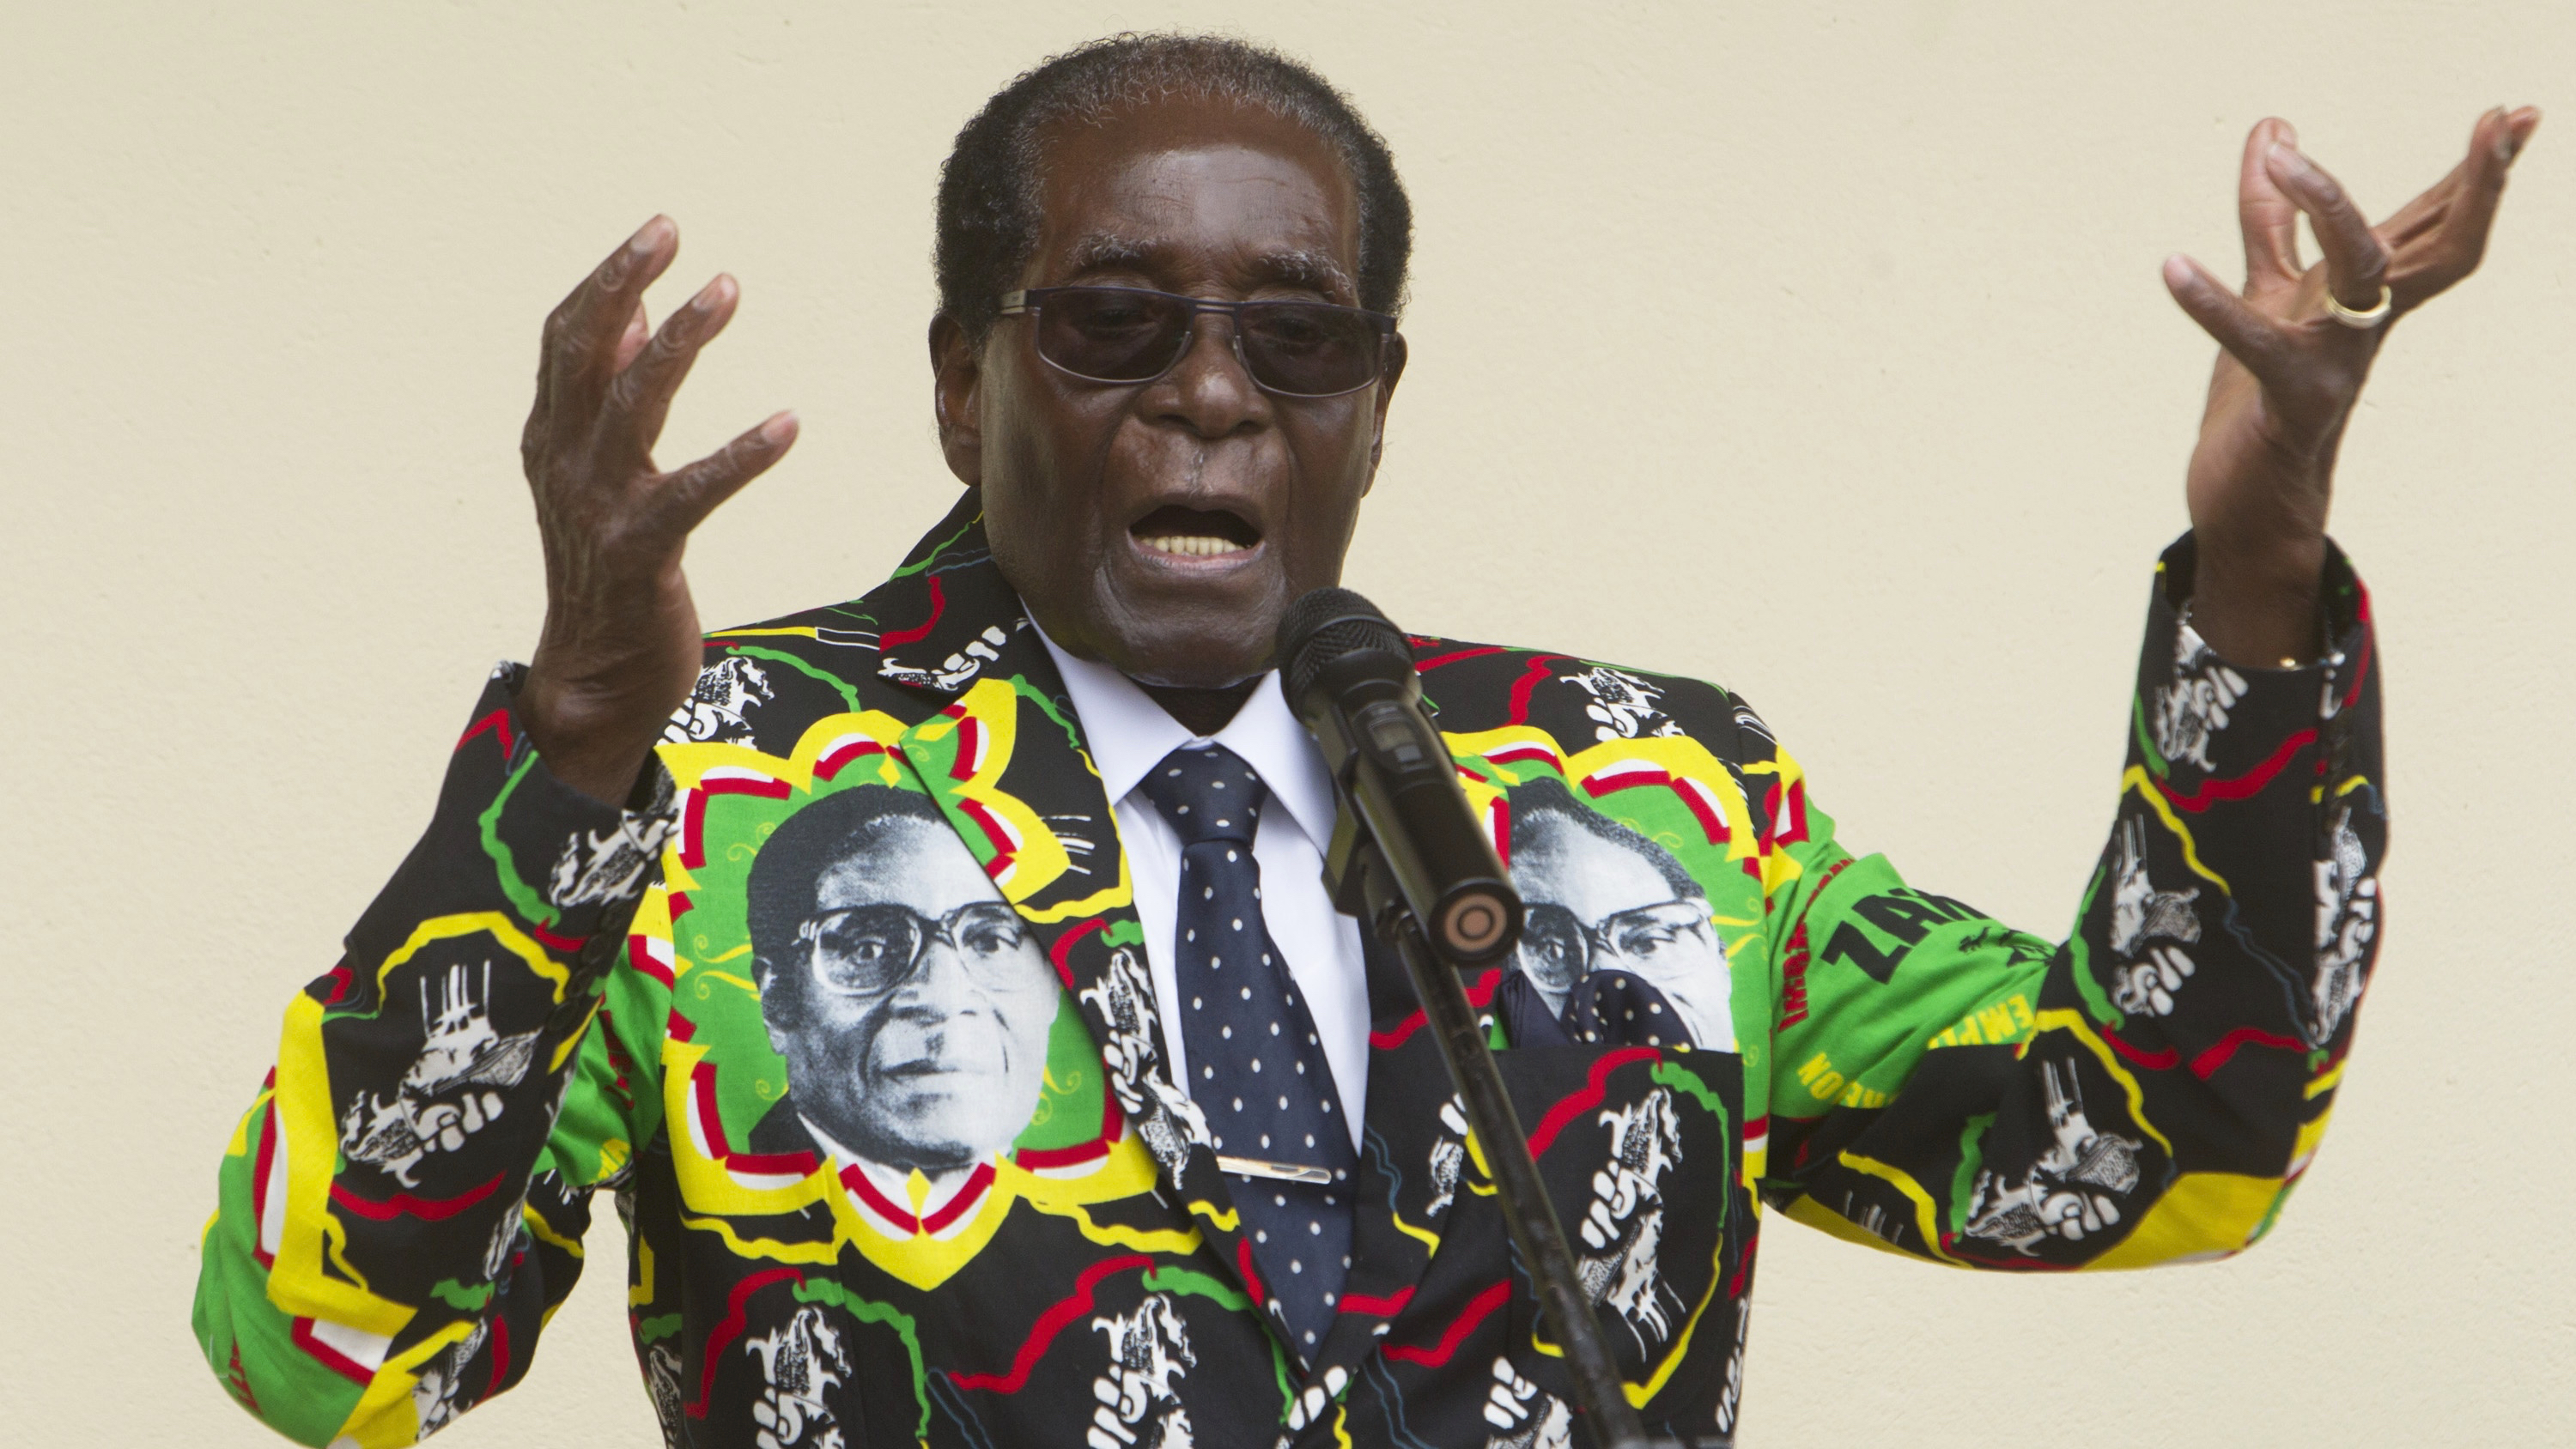 Zanu-PF endorses Robert Mugabe as it's presidential candidate for Zimbabwe's 2018 election